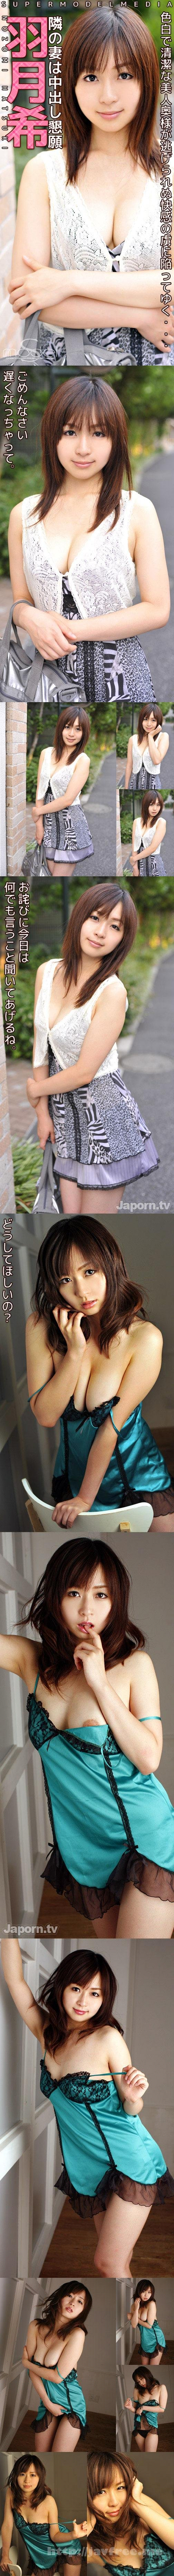 [SMBD-19] S Model 19 : 羽月希 (ブルーレイディスク版) - image SMBD-19_1 on https://javfree.me